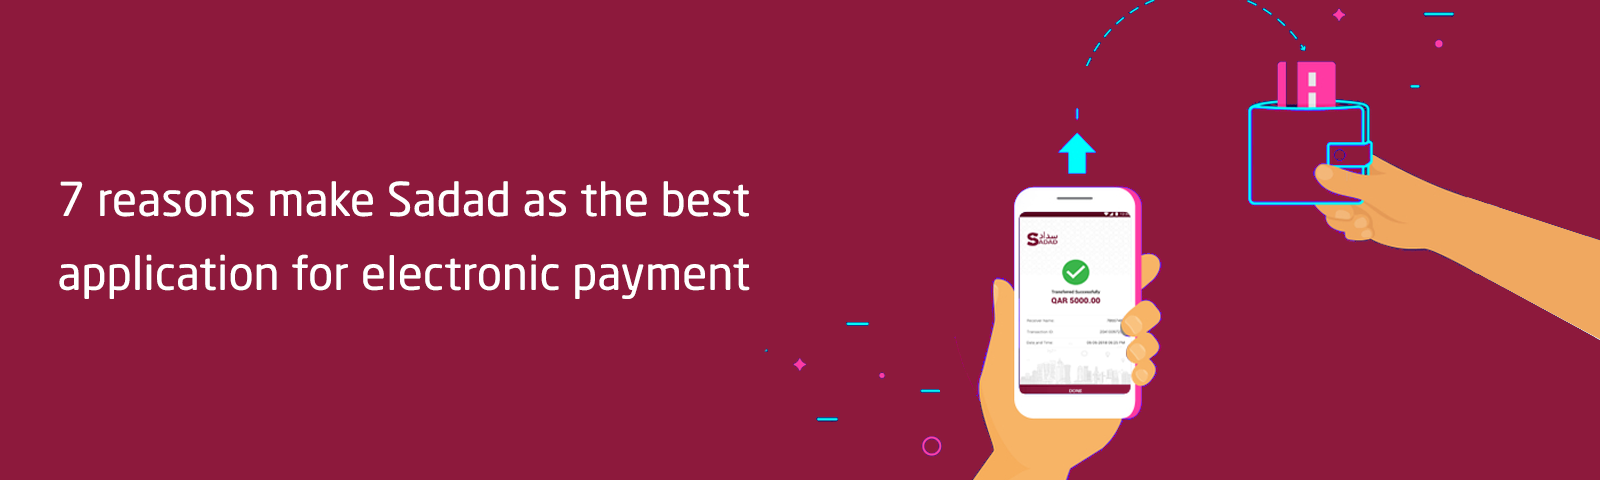 7 reasons make Sadad as the best application for electronic payment